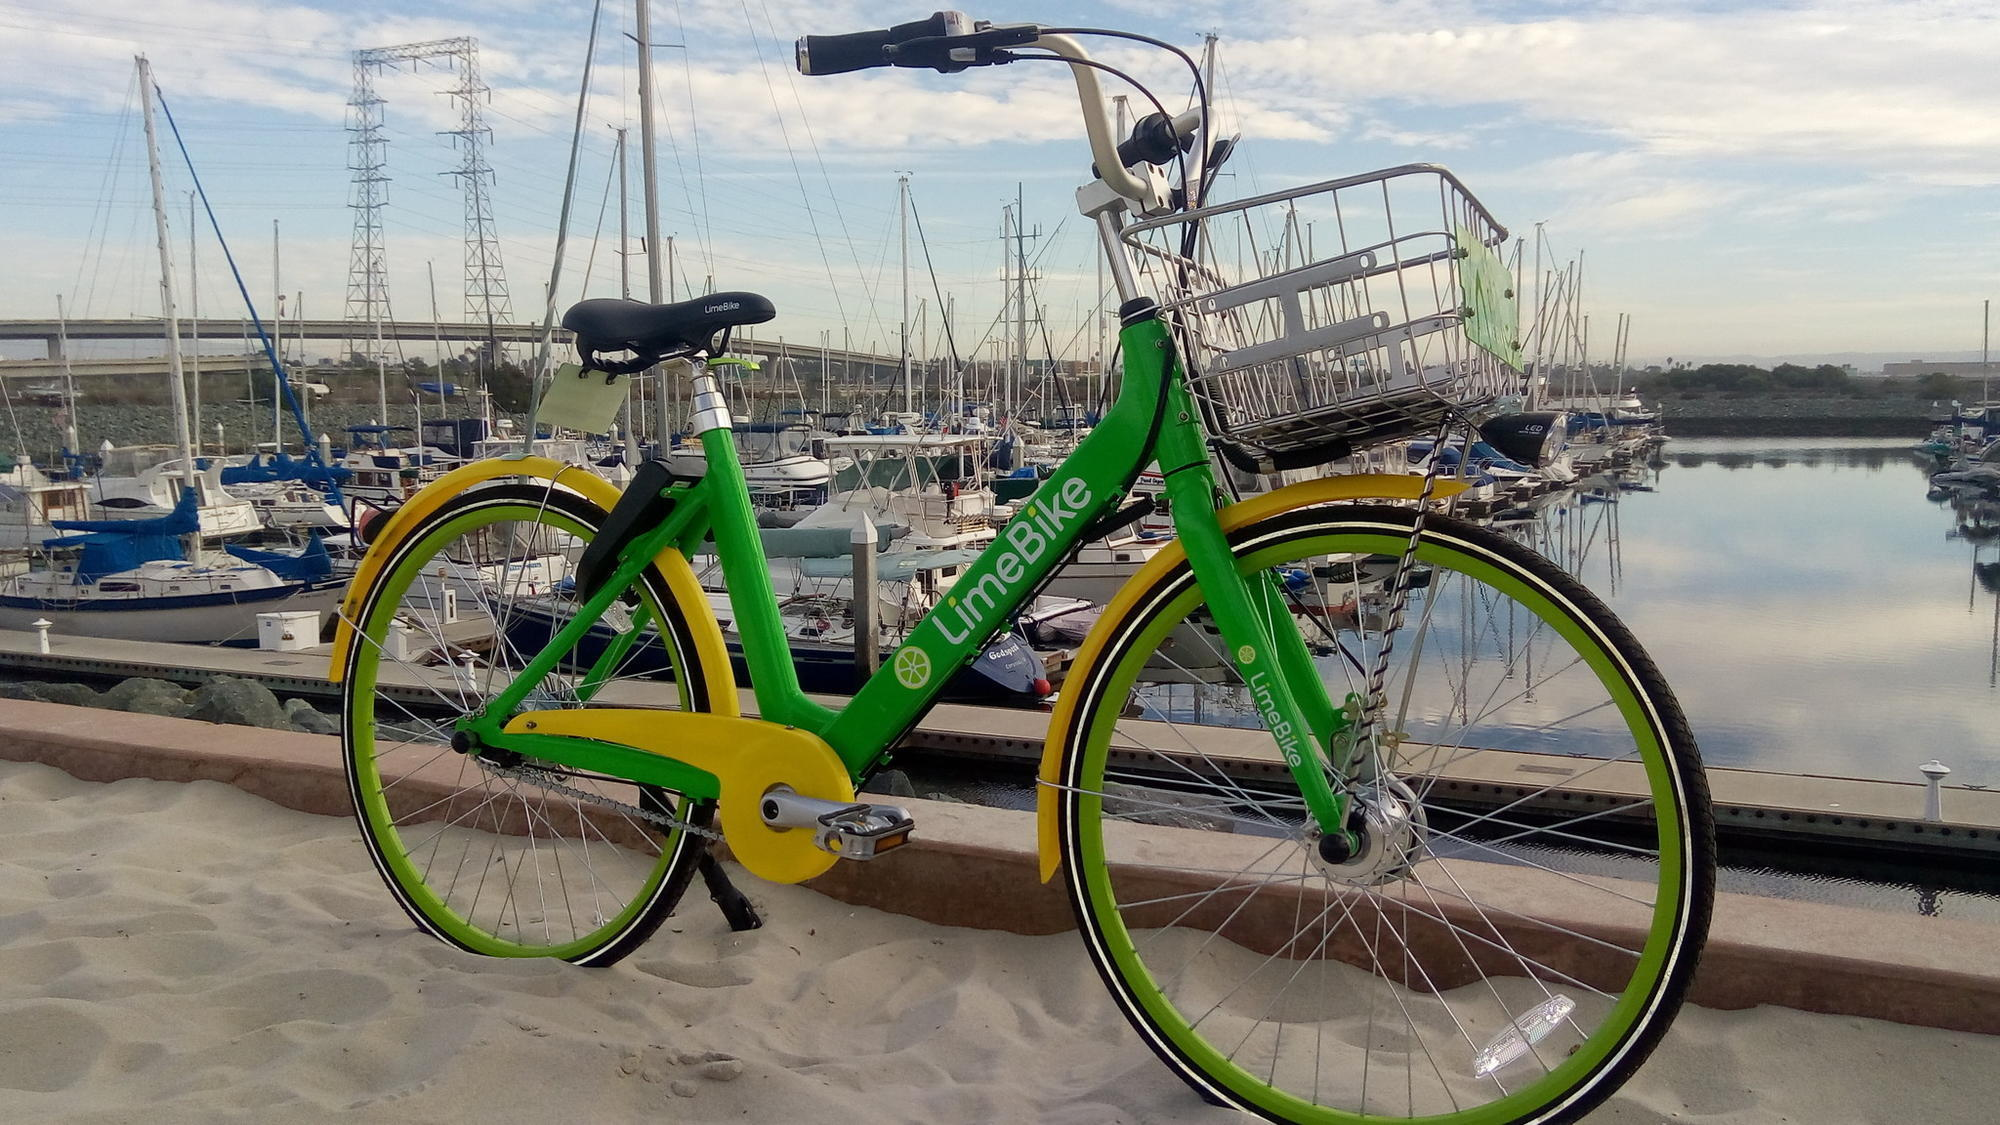 San Diego considering crackdown on dockless bikes ...